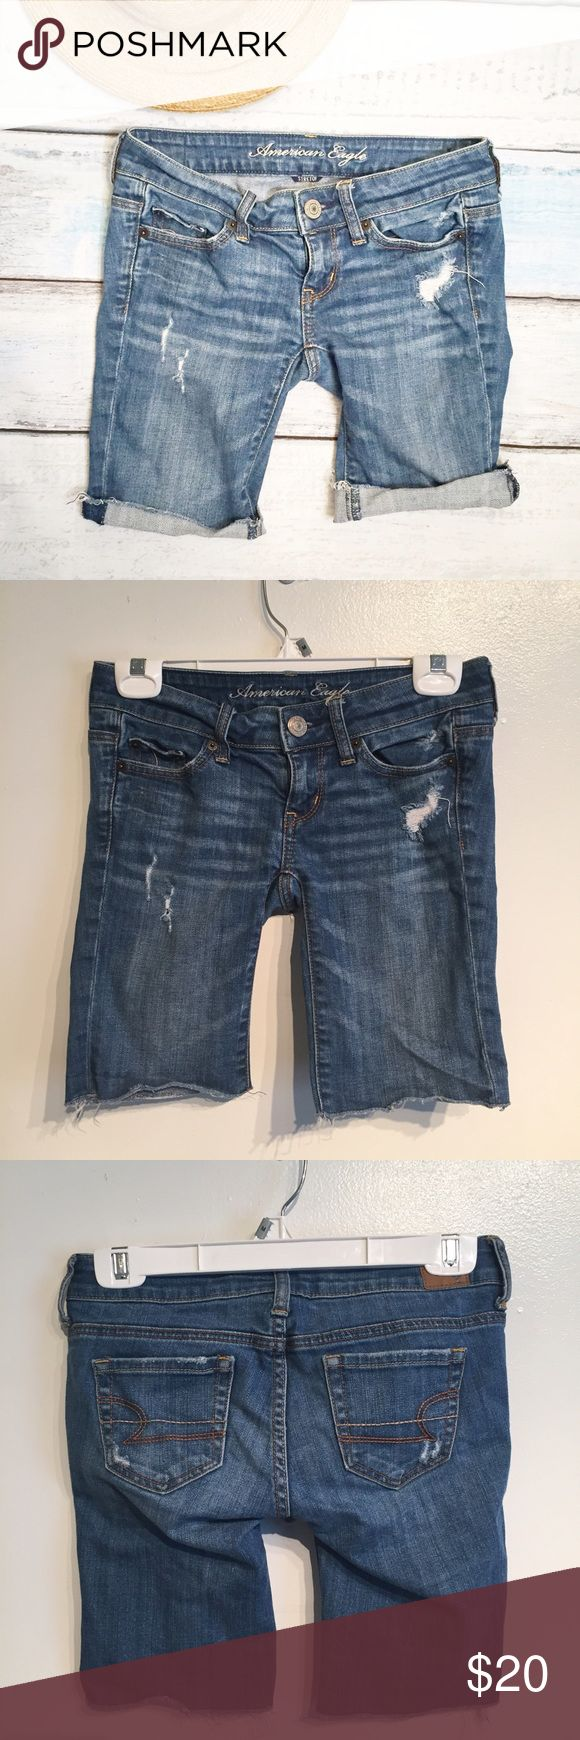 """American Eagle Denim Bermuda Shorts American Eagle Outfitters slightly distressed denim Bermuda shorts. Size 00. Measures 14"""" flat at the waist and 9"""" inseam. No modeling. Smoke free home. I do discount bundles. American Eagle Outfitters Shorts Bermudas"""